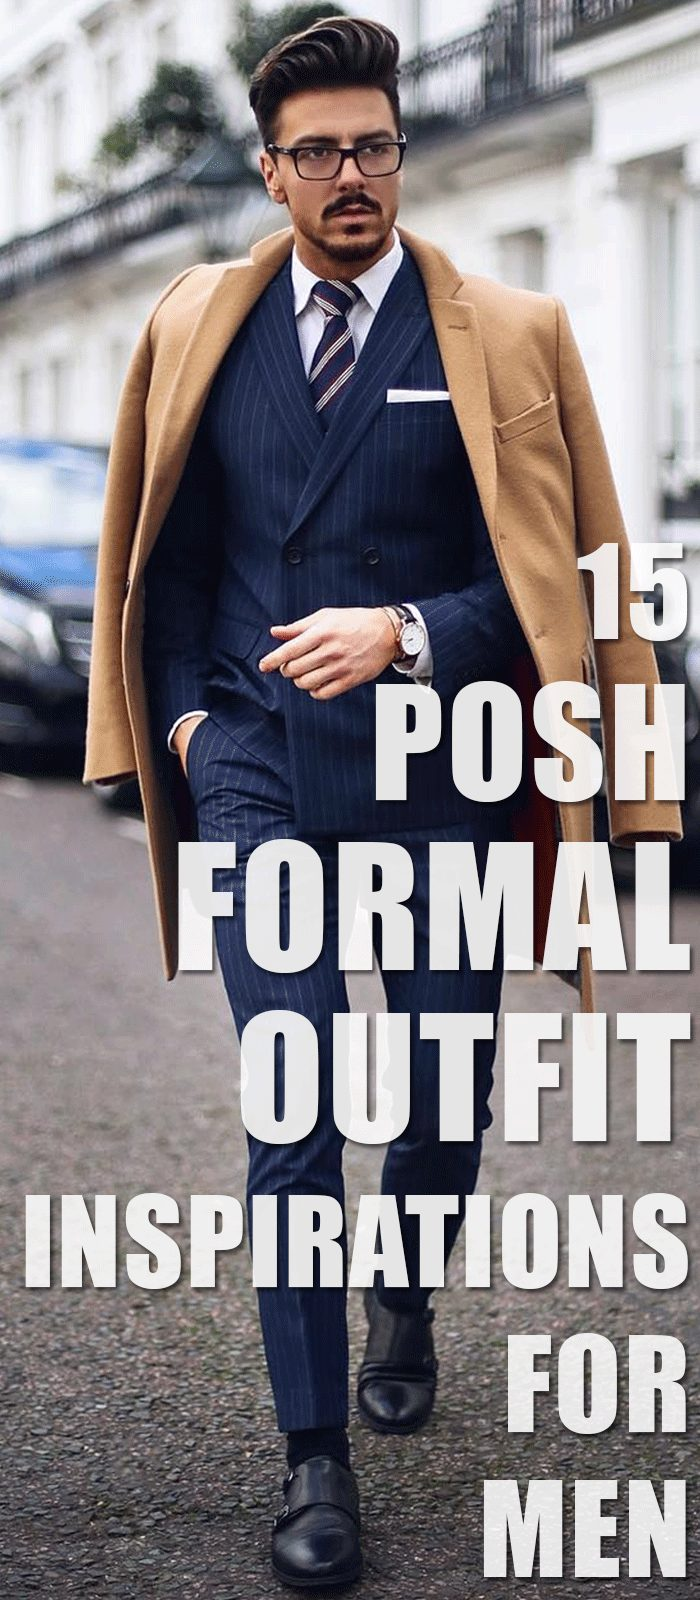 15 Posh Formal Outfit Inspirations For Men.